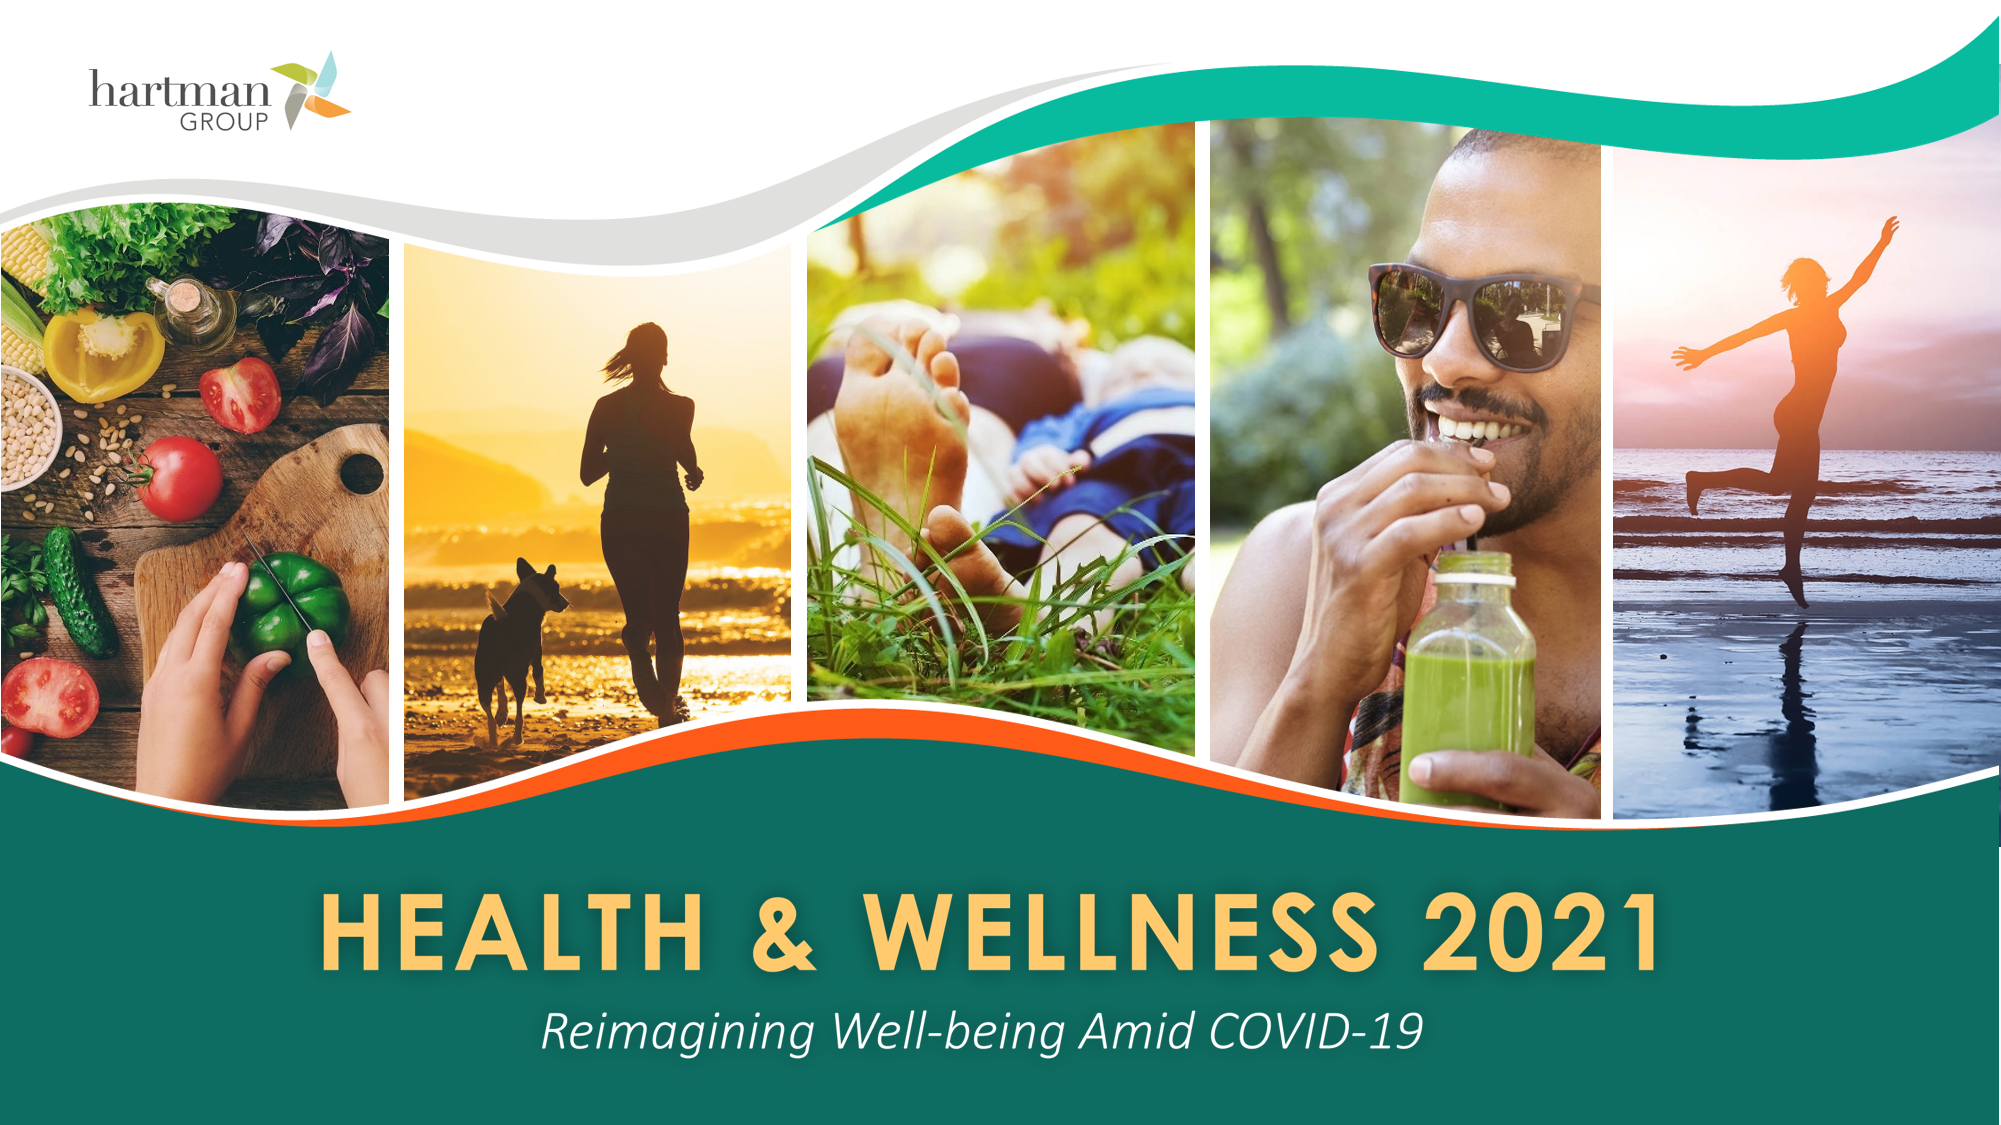 Health & Wellness: Reimagining Well-being Amid COVID-19